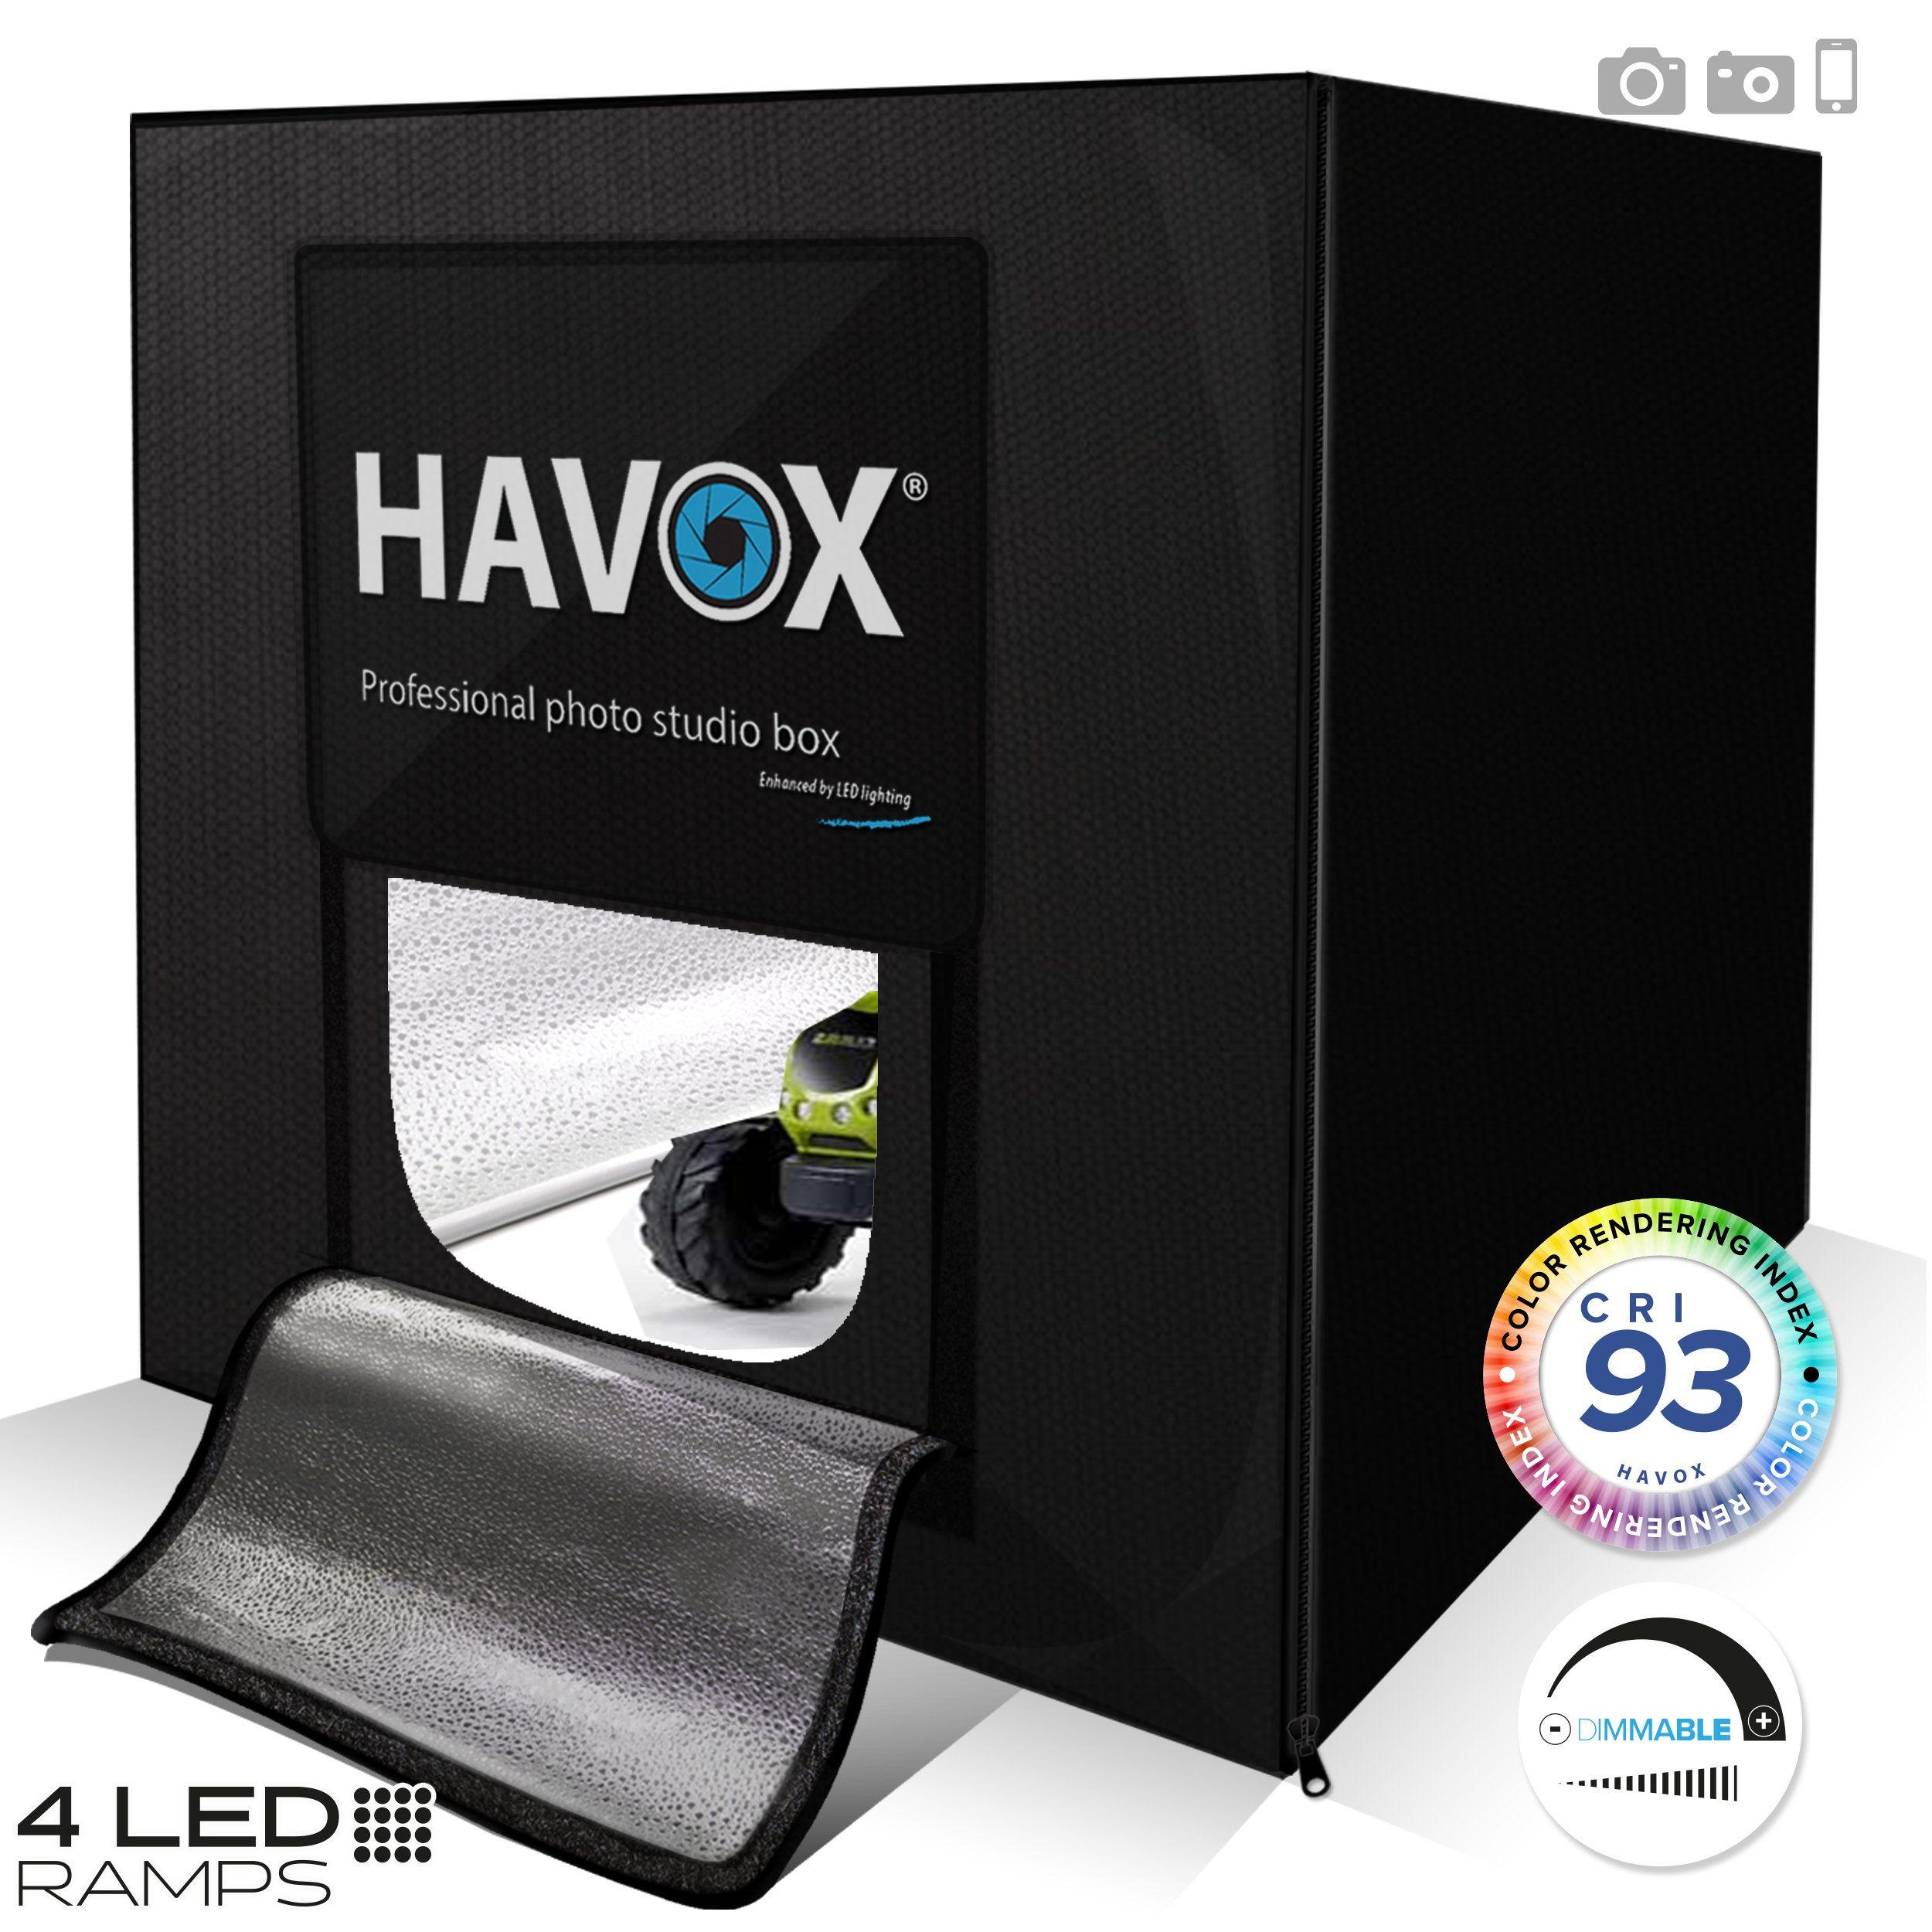 HAVOX - Photo Studio HPB-80XD - Dimension 32'x32'x32' - Dimmable LED Lighting ''Daylight'' 5500k - 26,000 lumens - CRI 93 - Make your commercial photos e-commerce by HAVOX